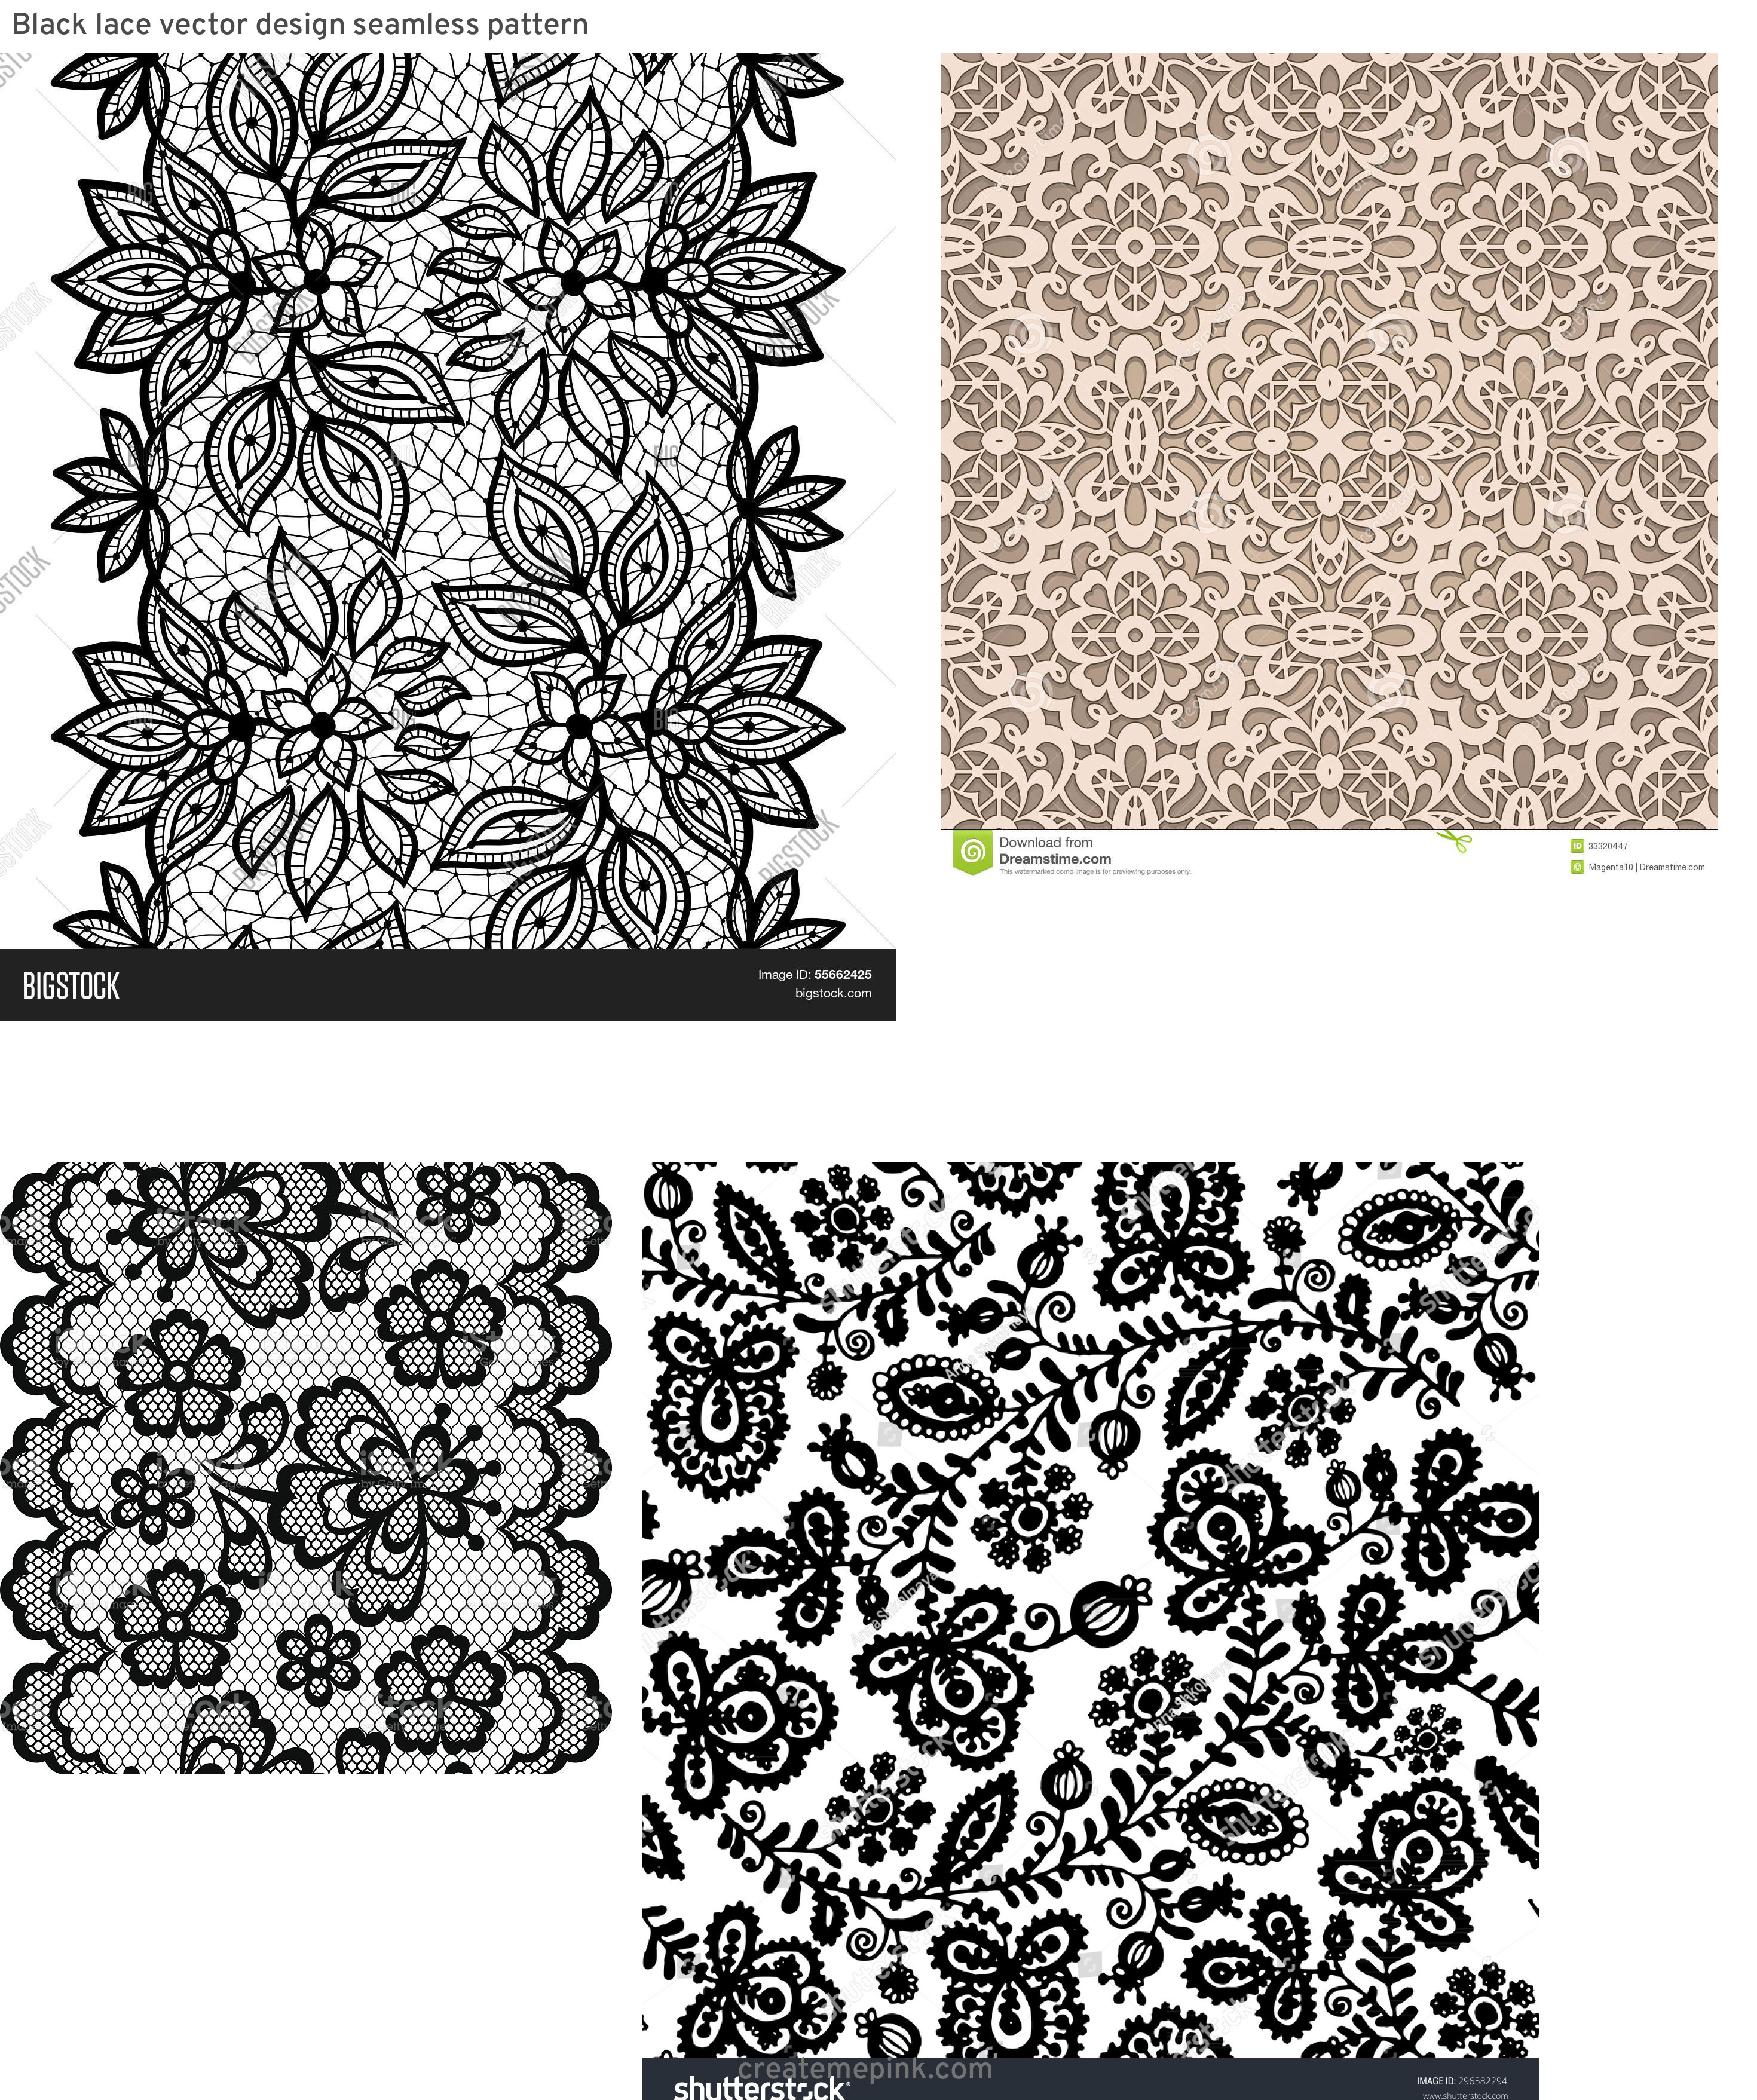 Vector Old Lace Black: Black Lace Vector Design Seamless Pattern